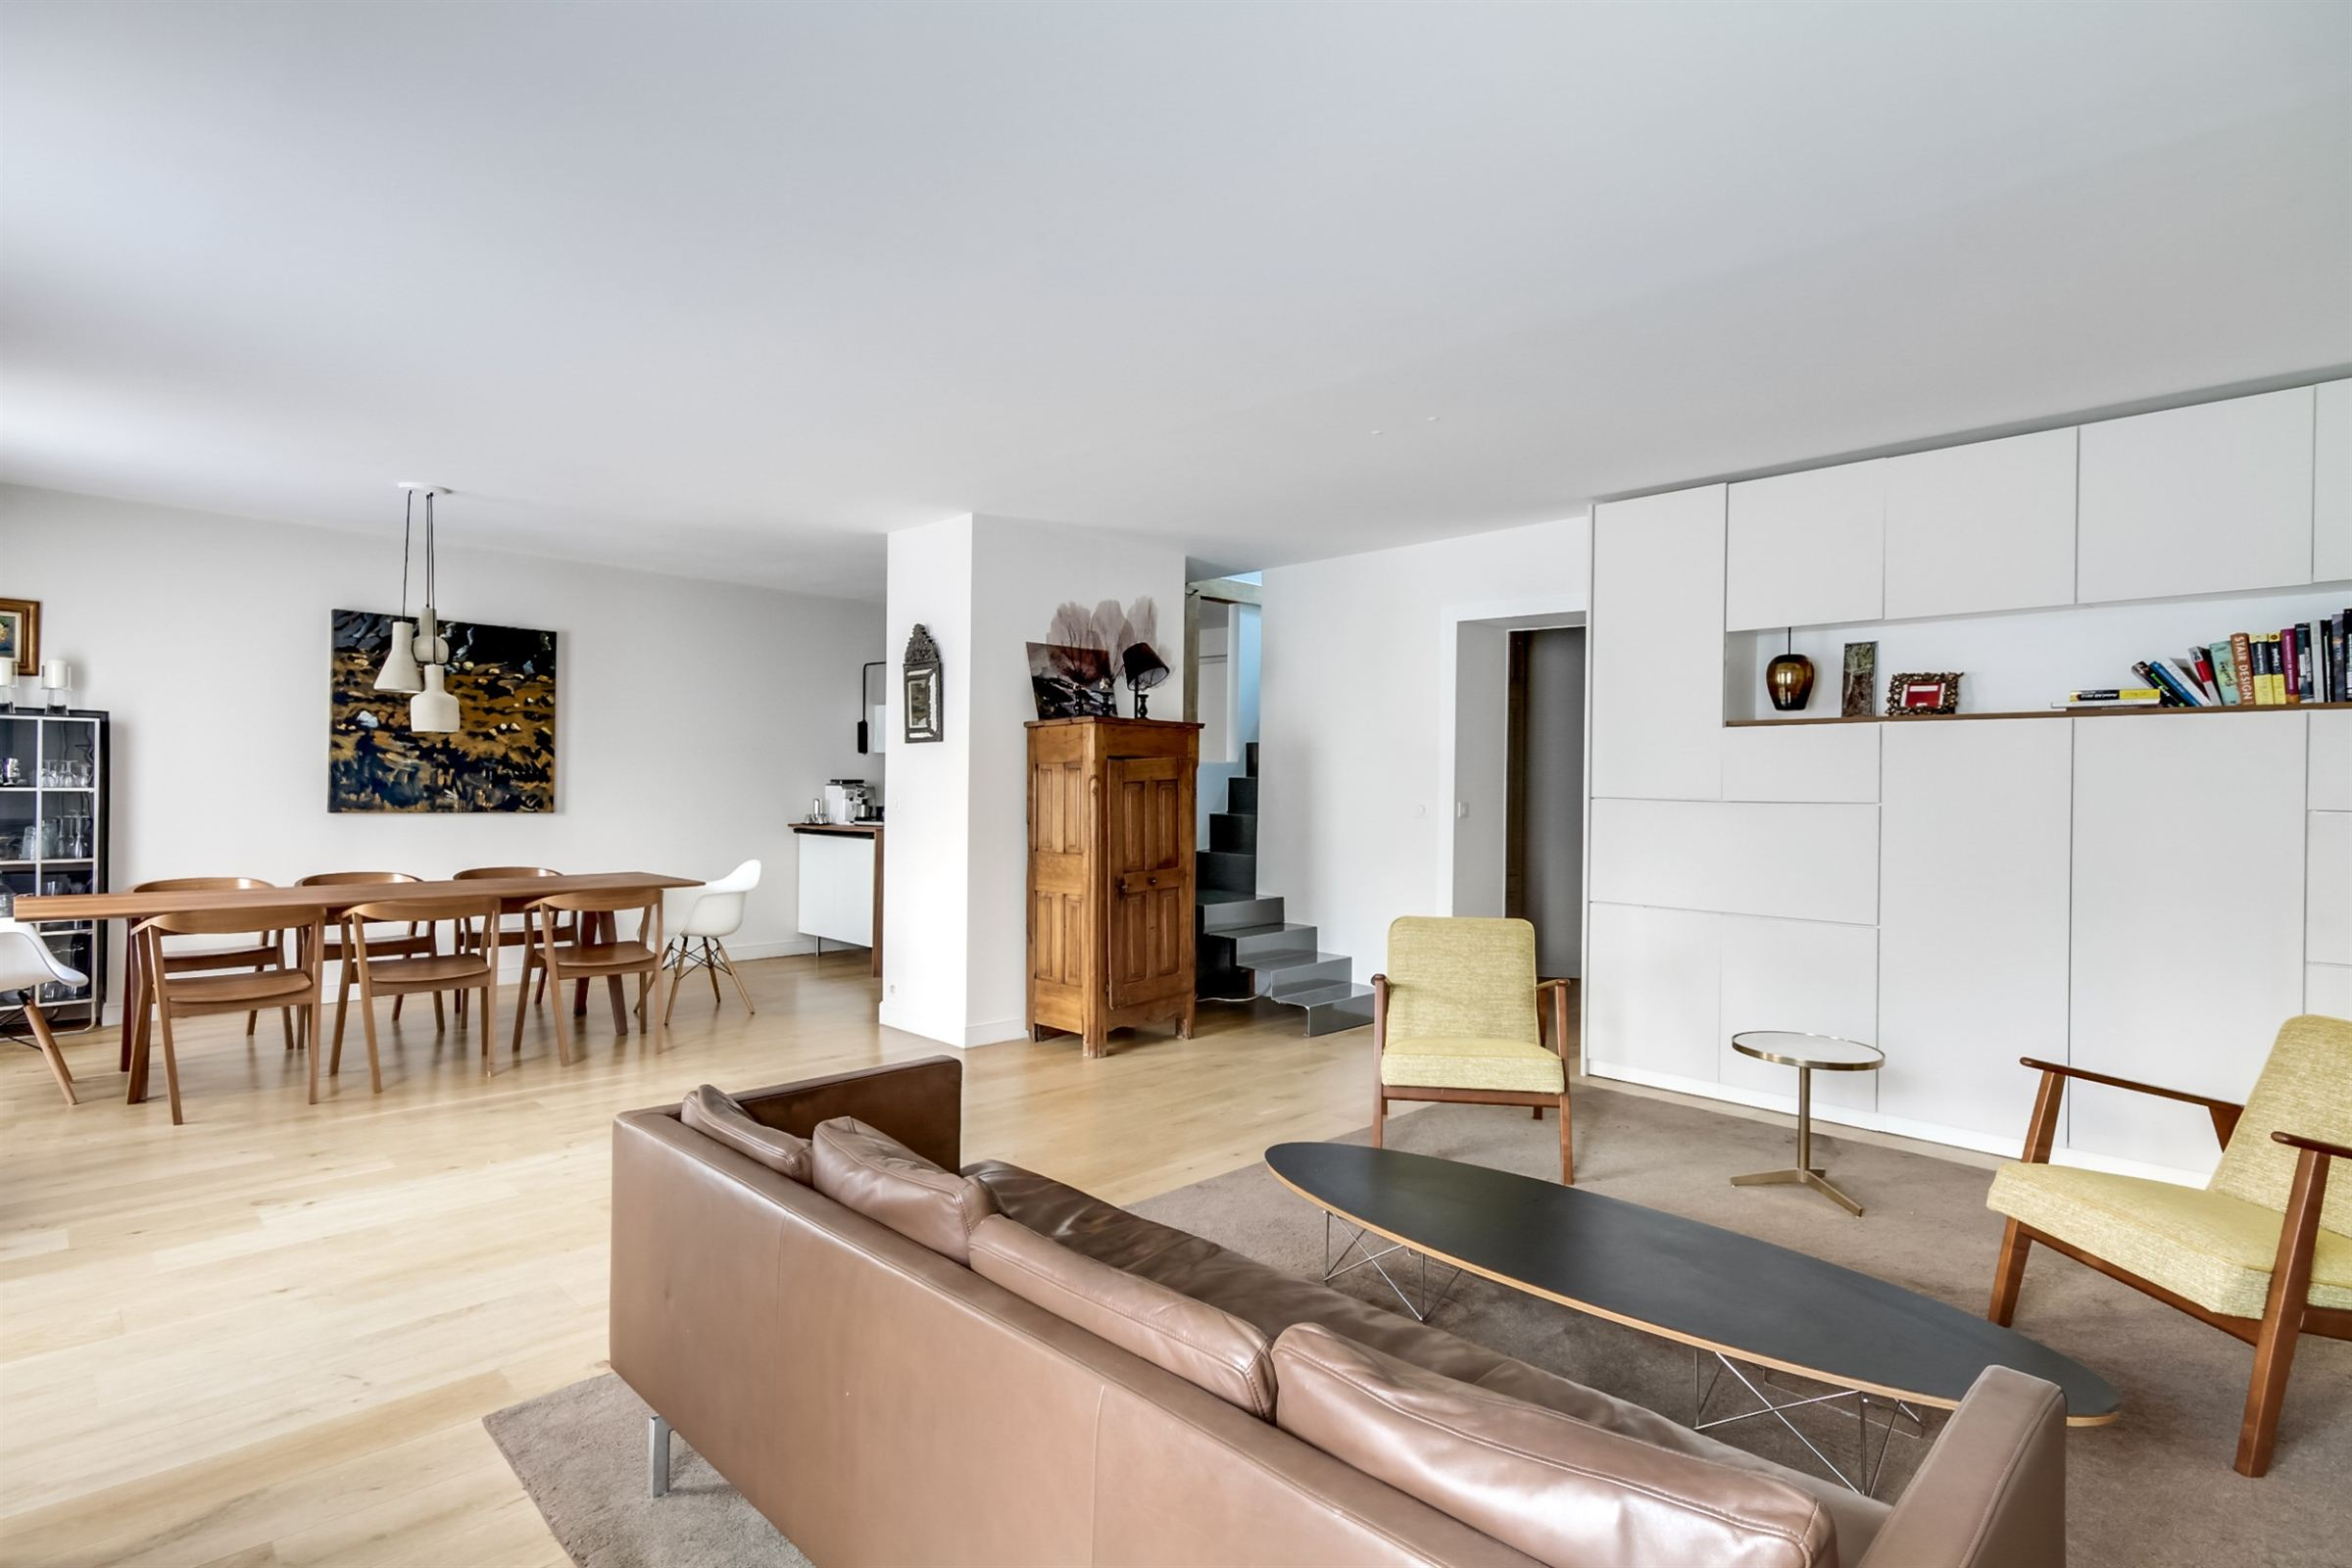 Apartamento por un Venta en Paris 9 - Apartment- Refursbished by an architect. Paris, Paris 75009 Francia